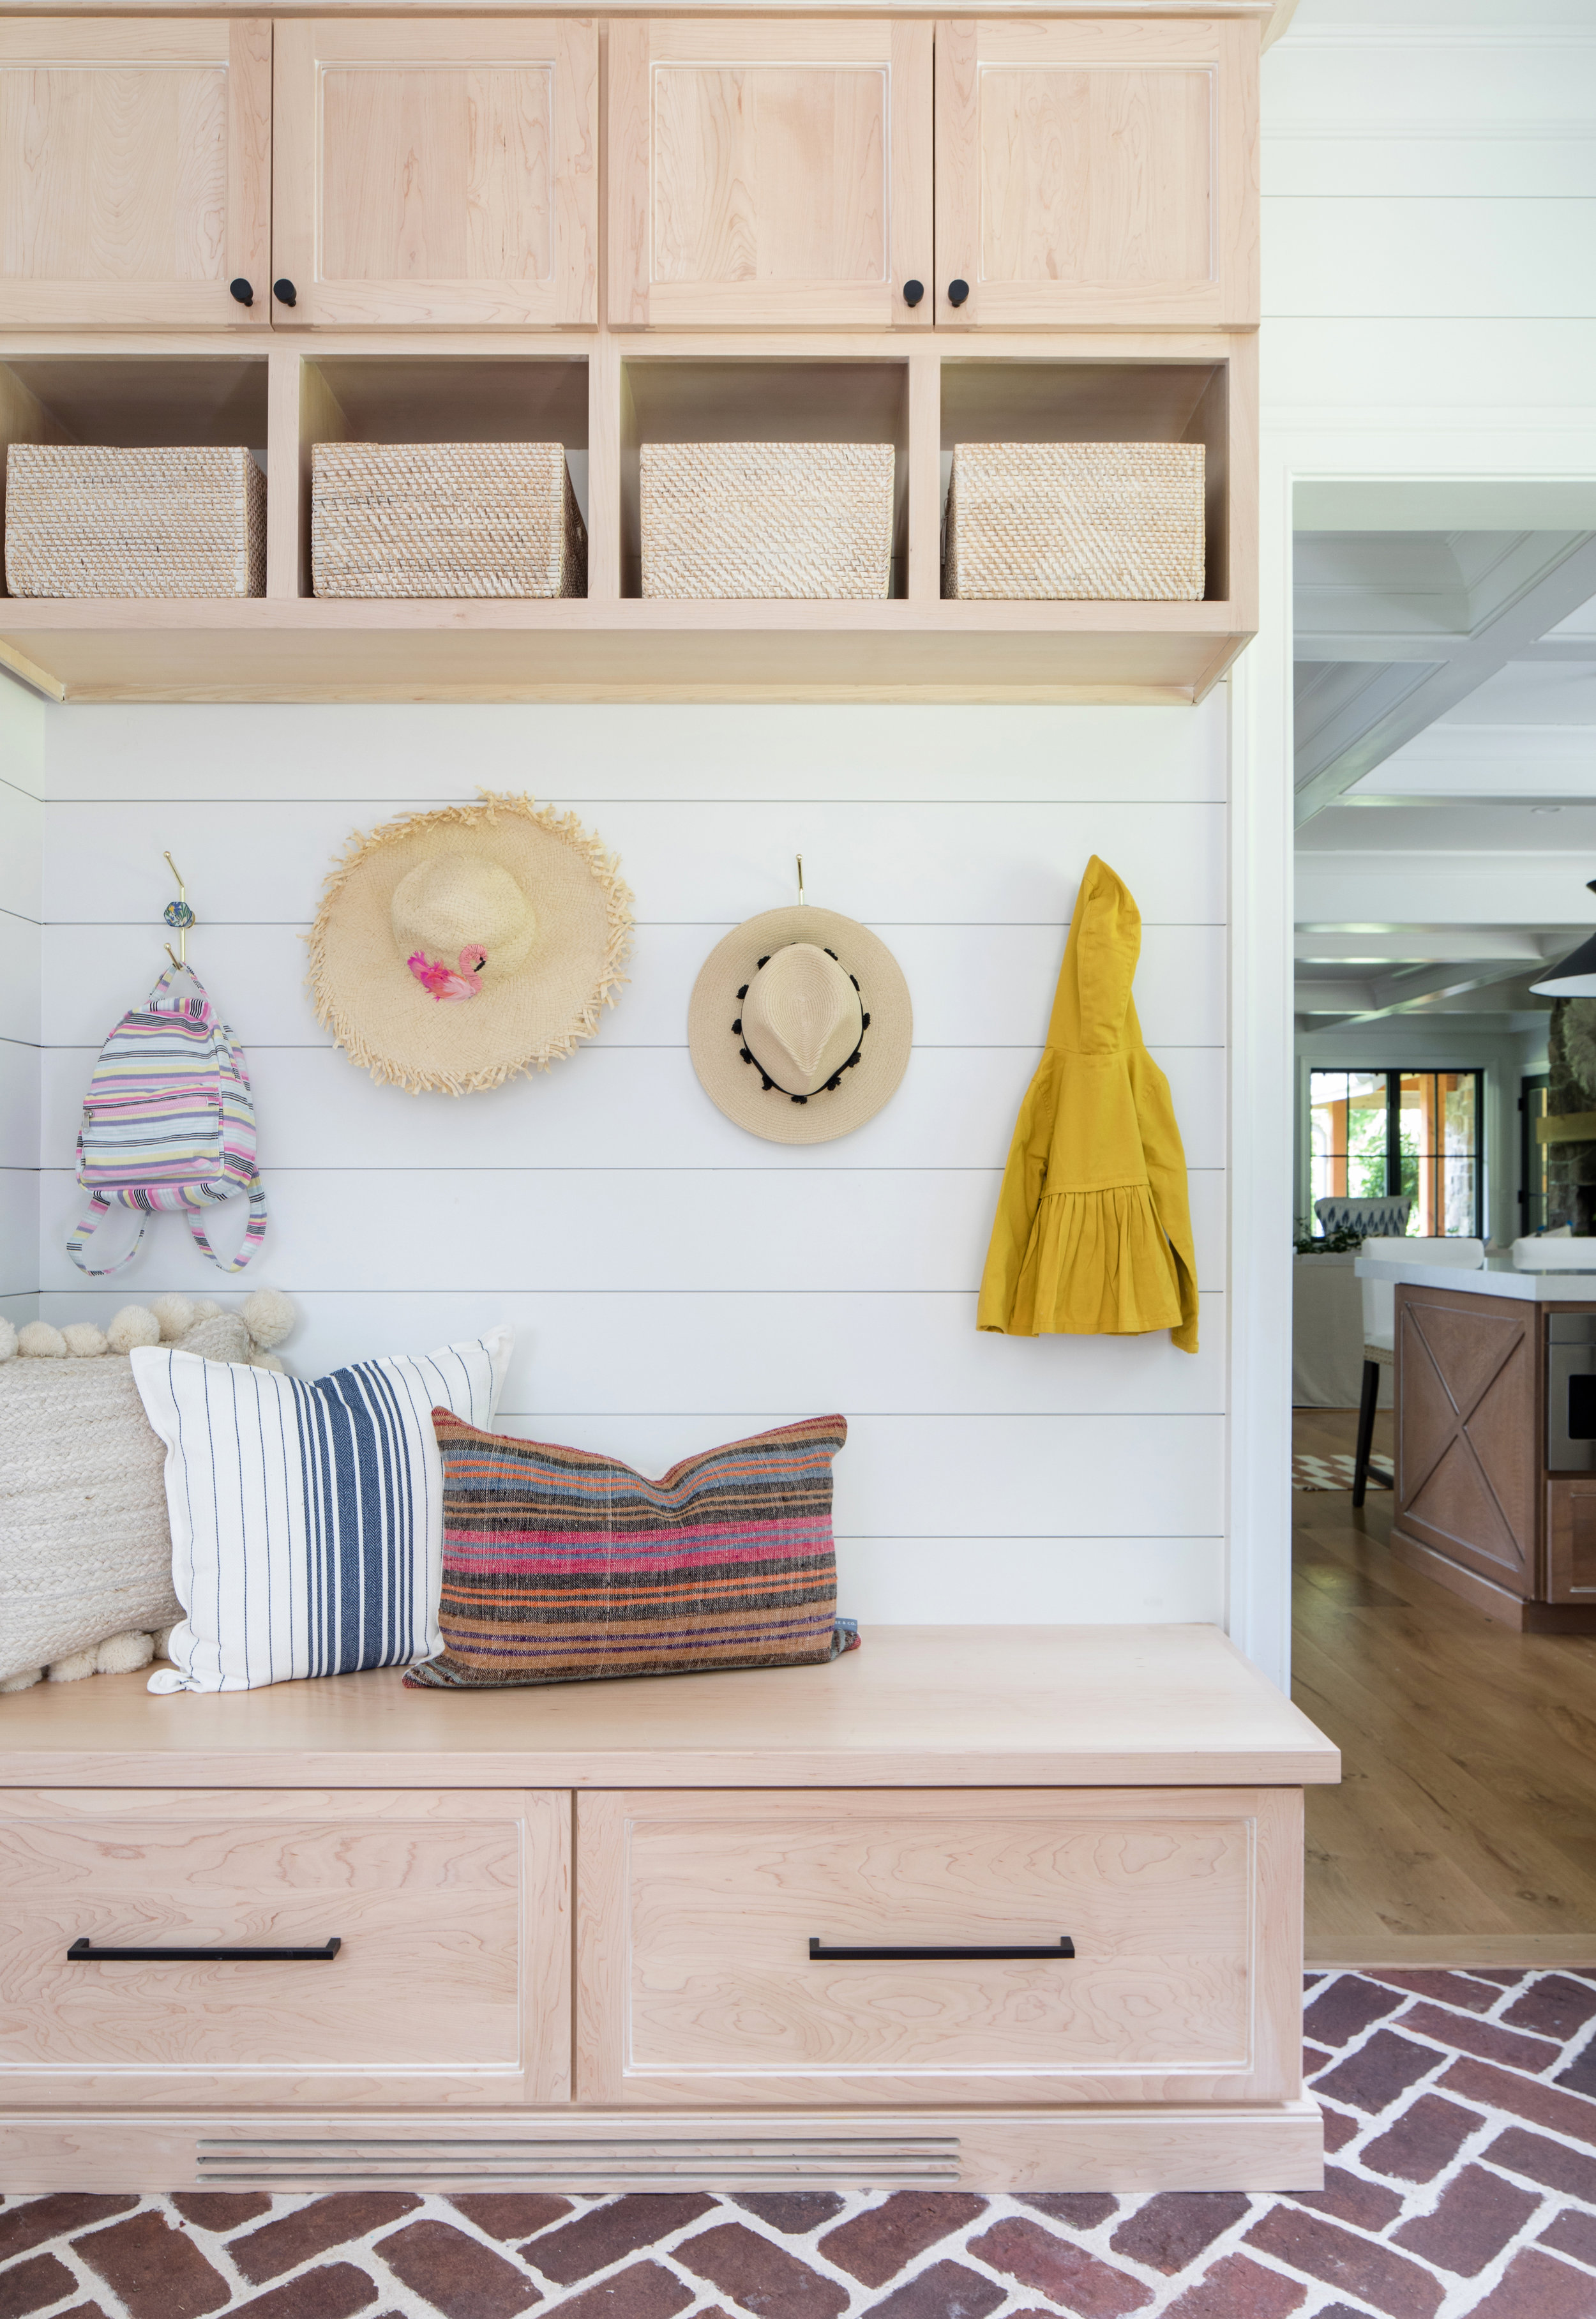 Mudroom Natural Wood Cabinets Mudrom Cubbies Modern Farmhouse Shiplap Brick Floors Stephanie Kraus Designs